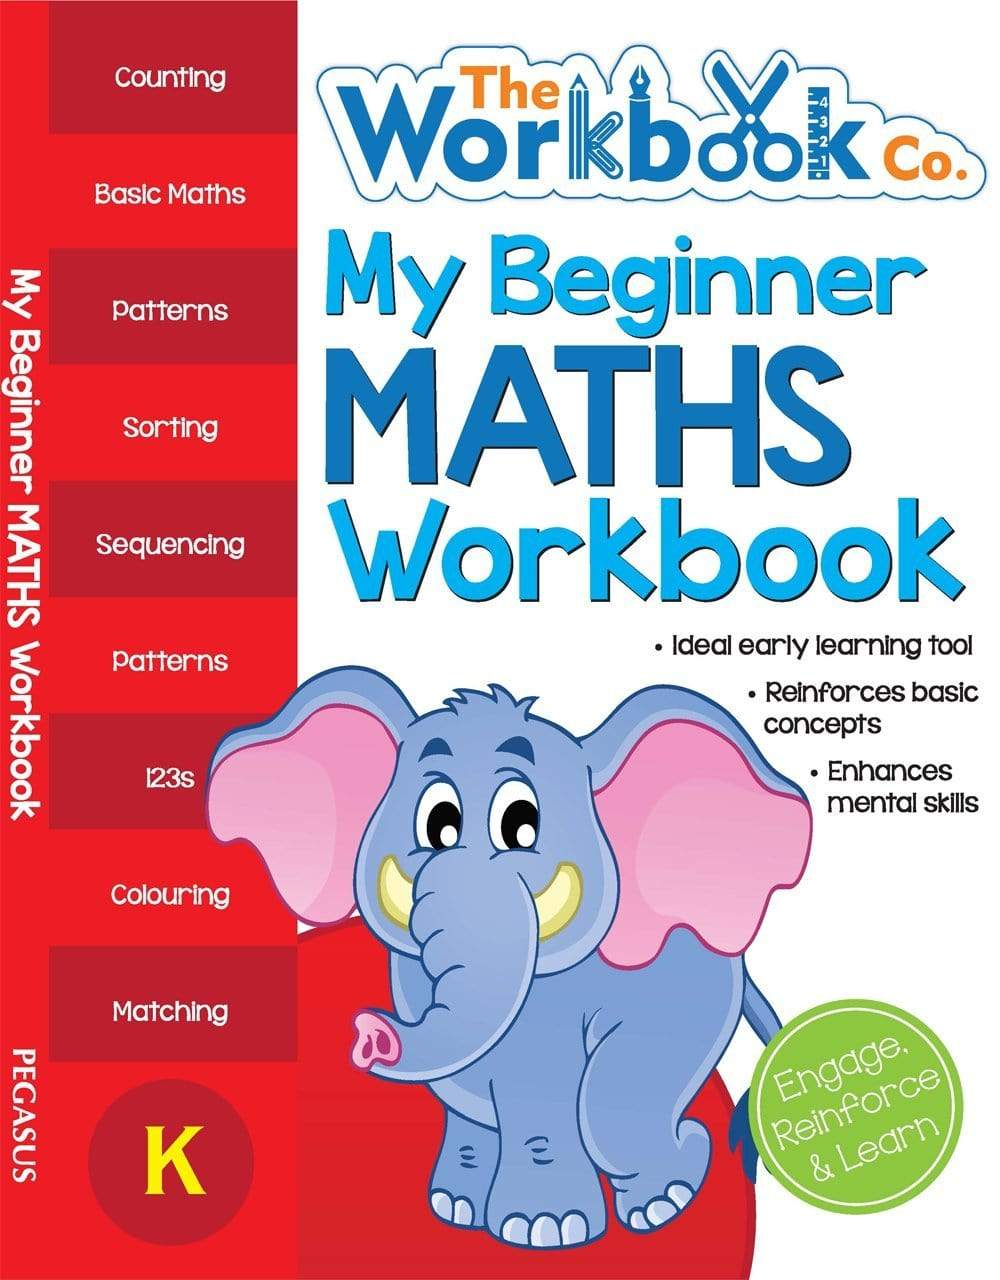 My Beginner Maths Workbook